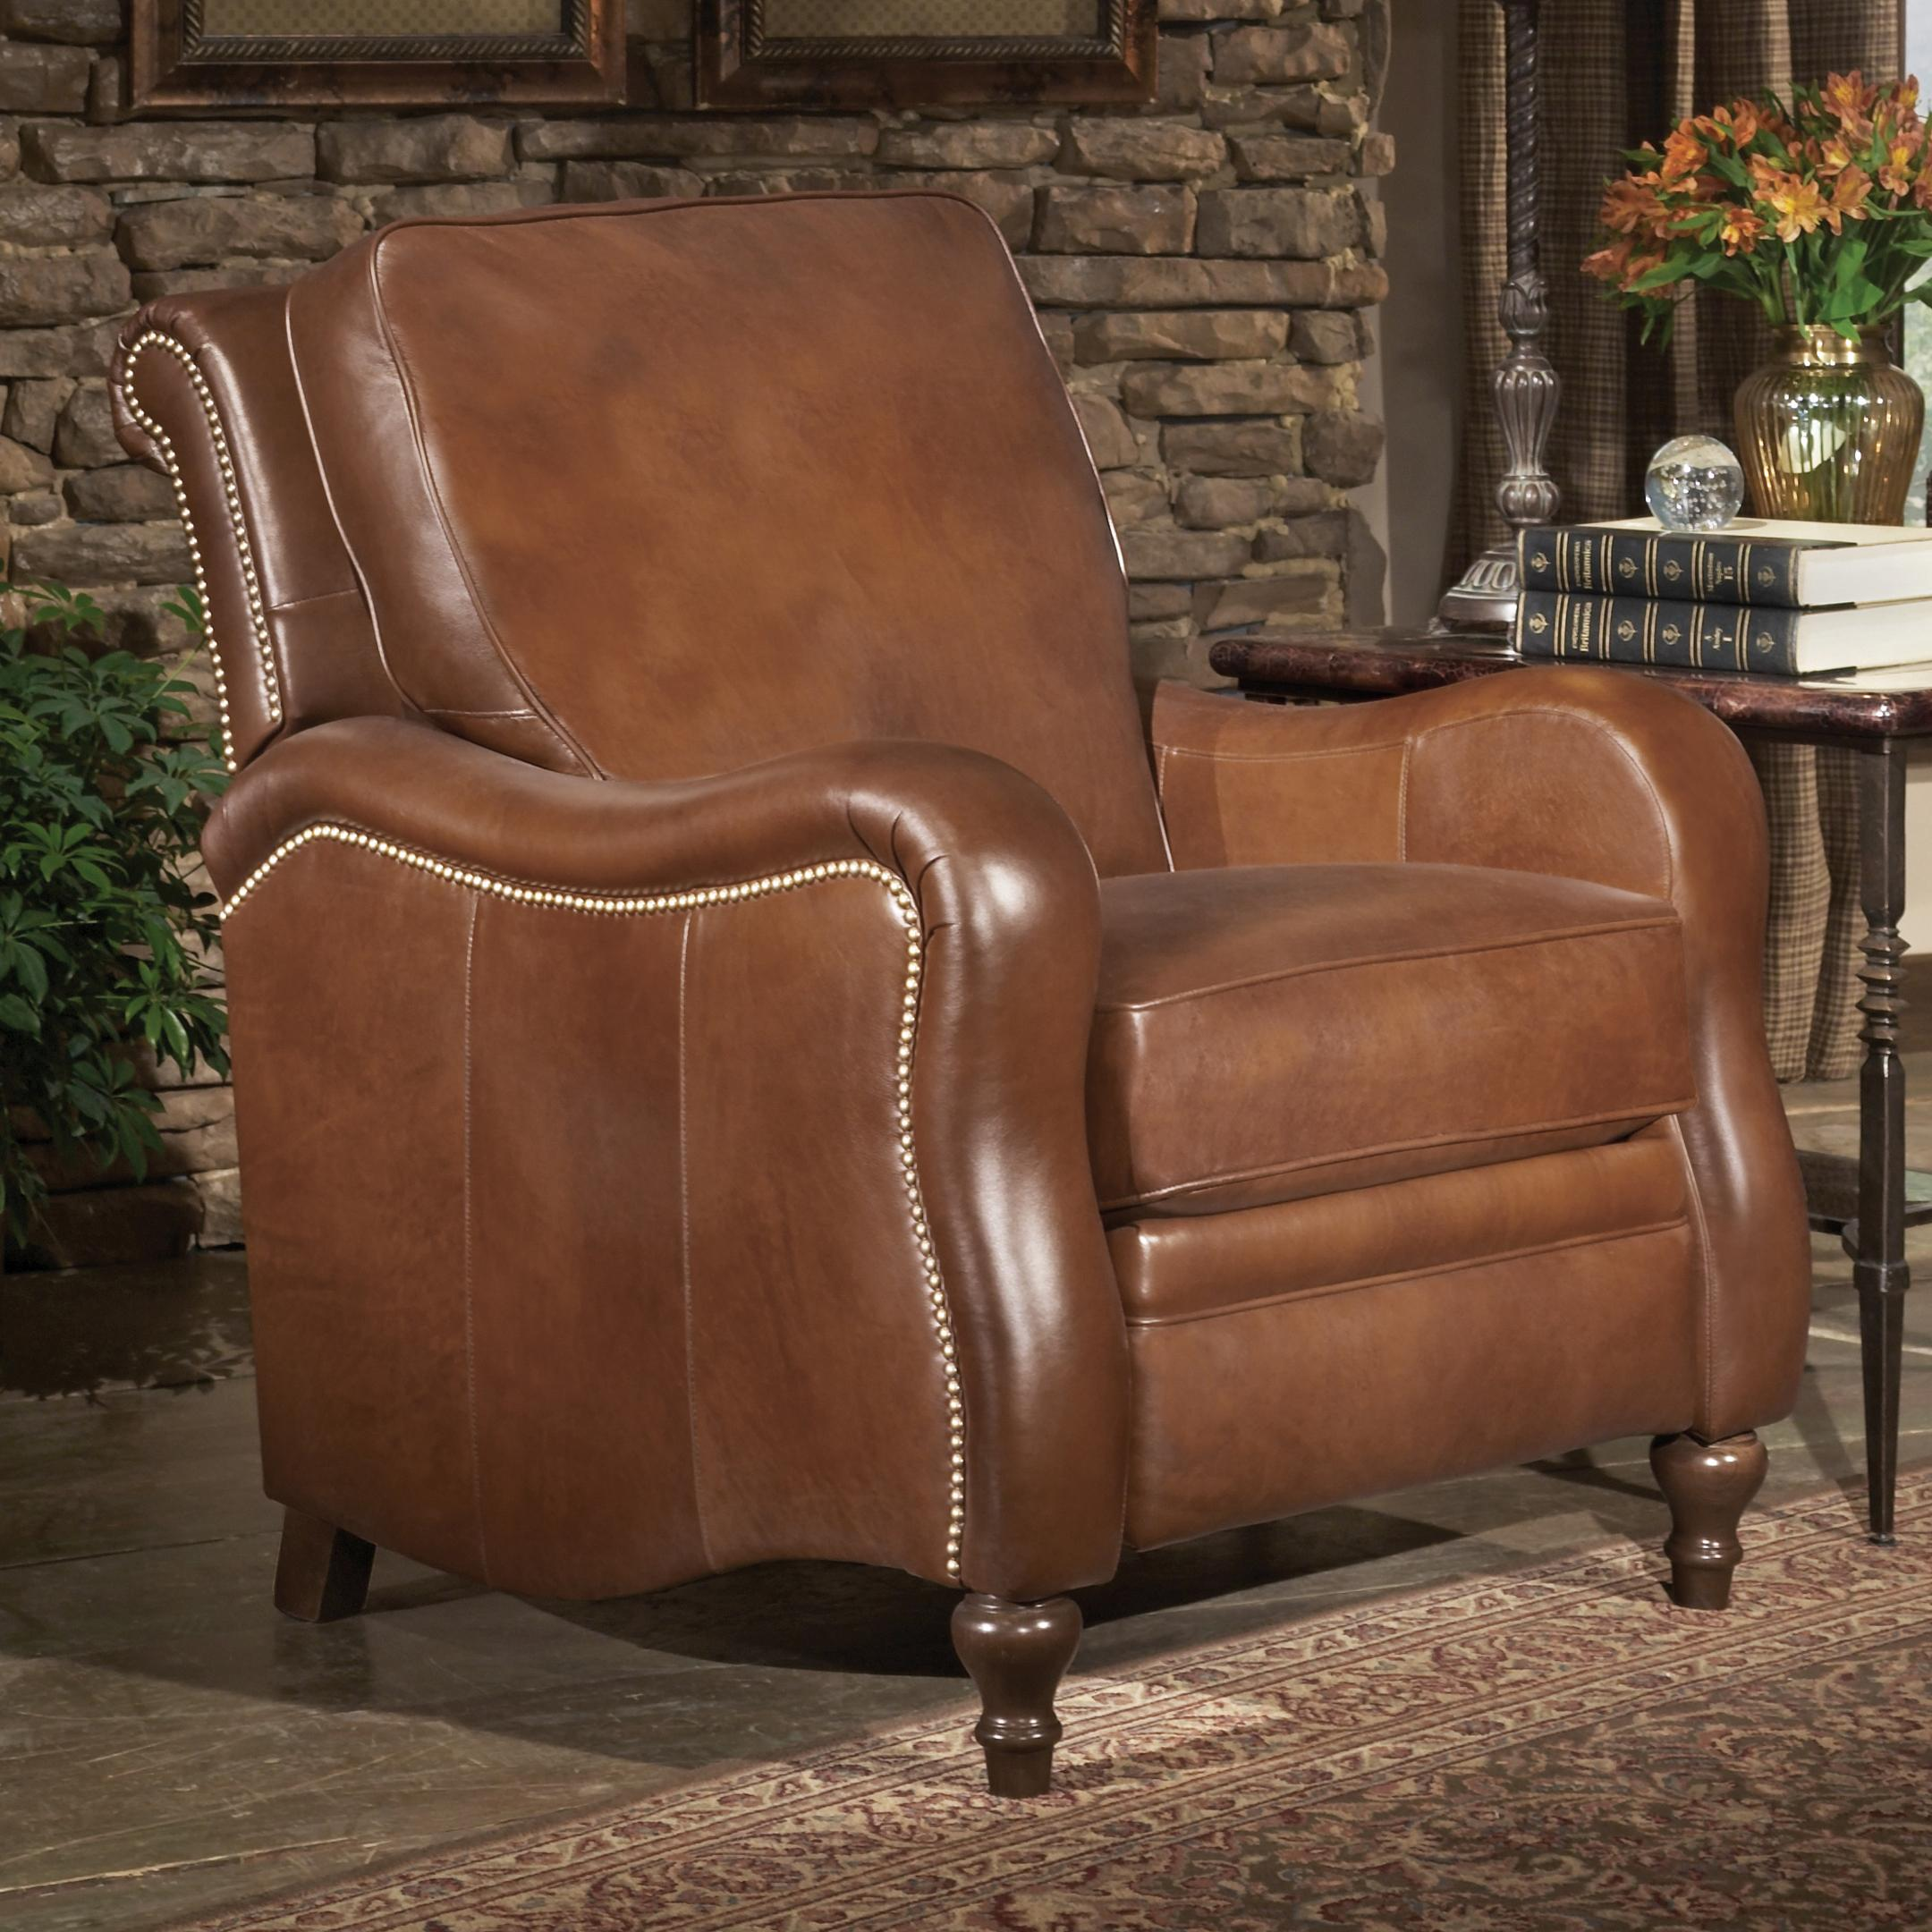 Smith Brothers Recliners Traditional High Leg Recliner with